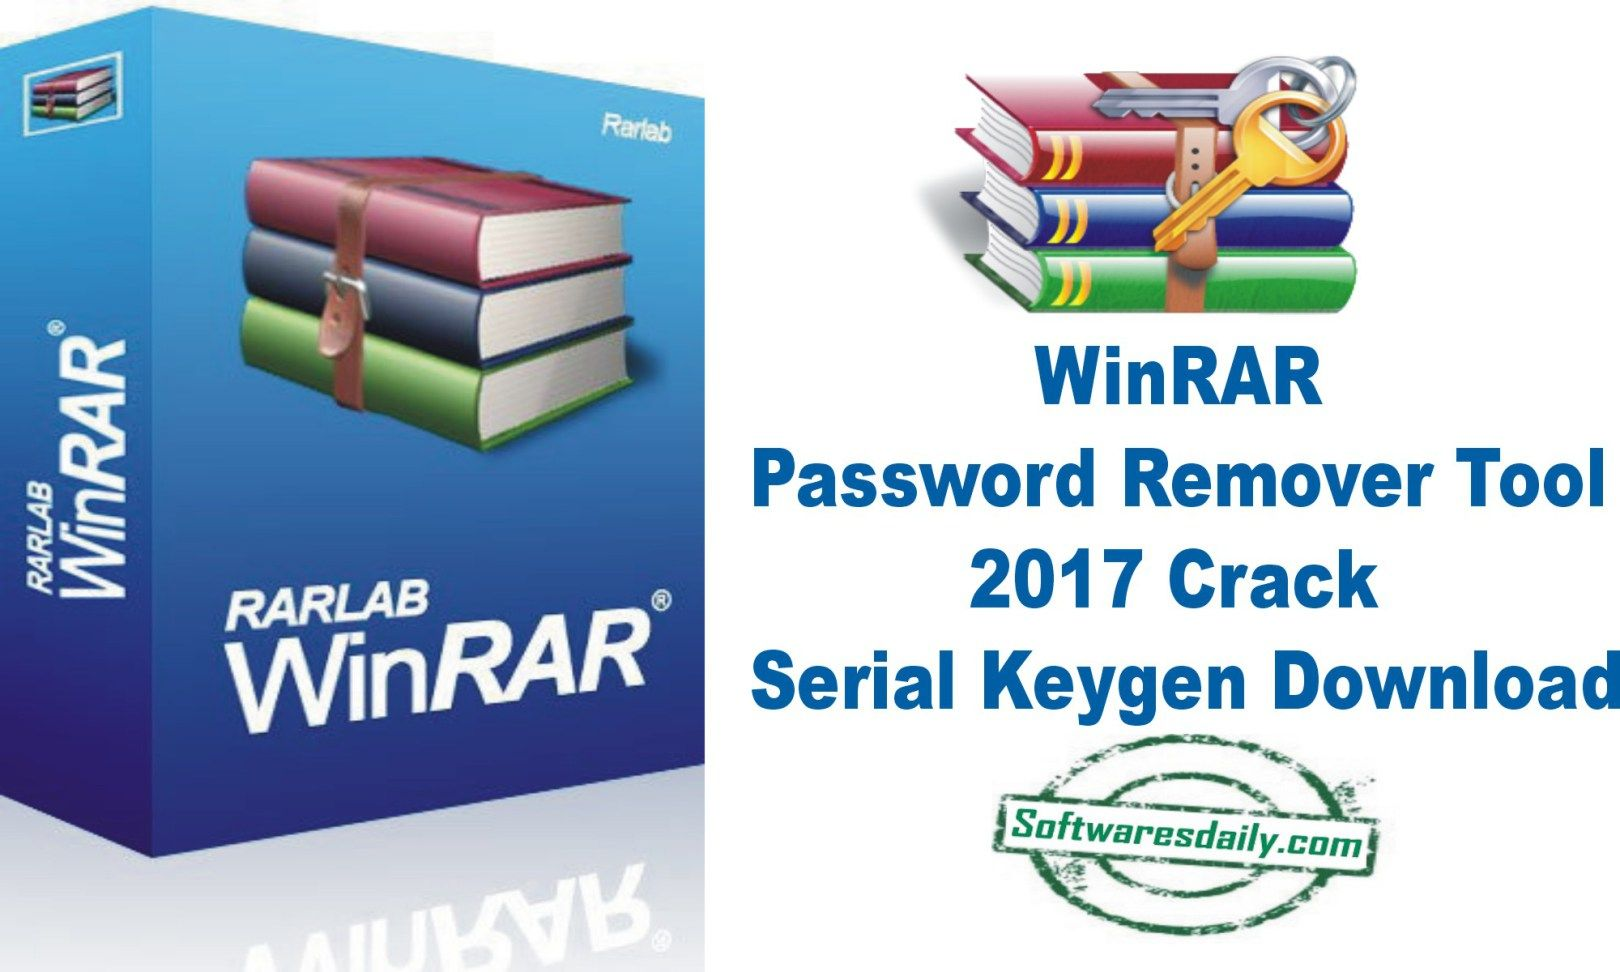 winrar password remover crack